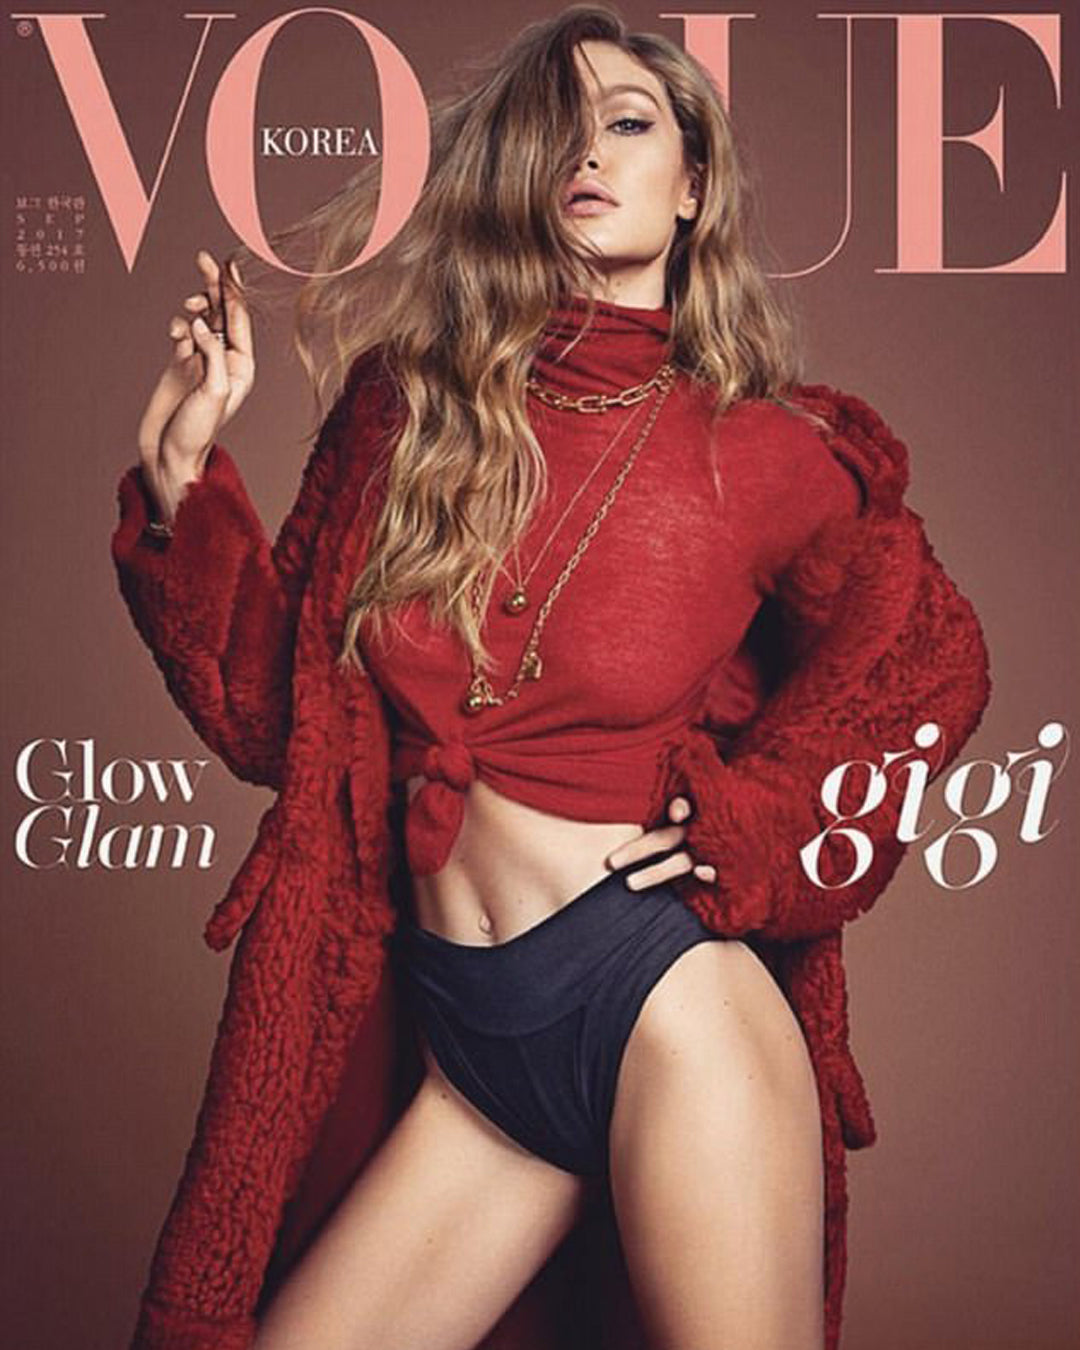 Lingerie Typeface on Vogue magazine cover - Moshik Nadav Fashion Typography and fonts